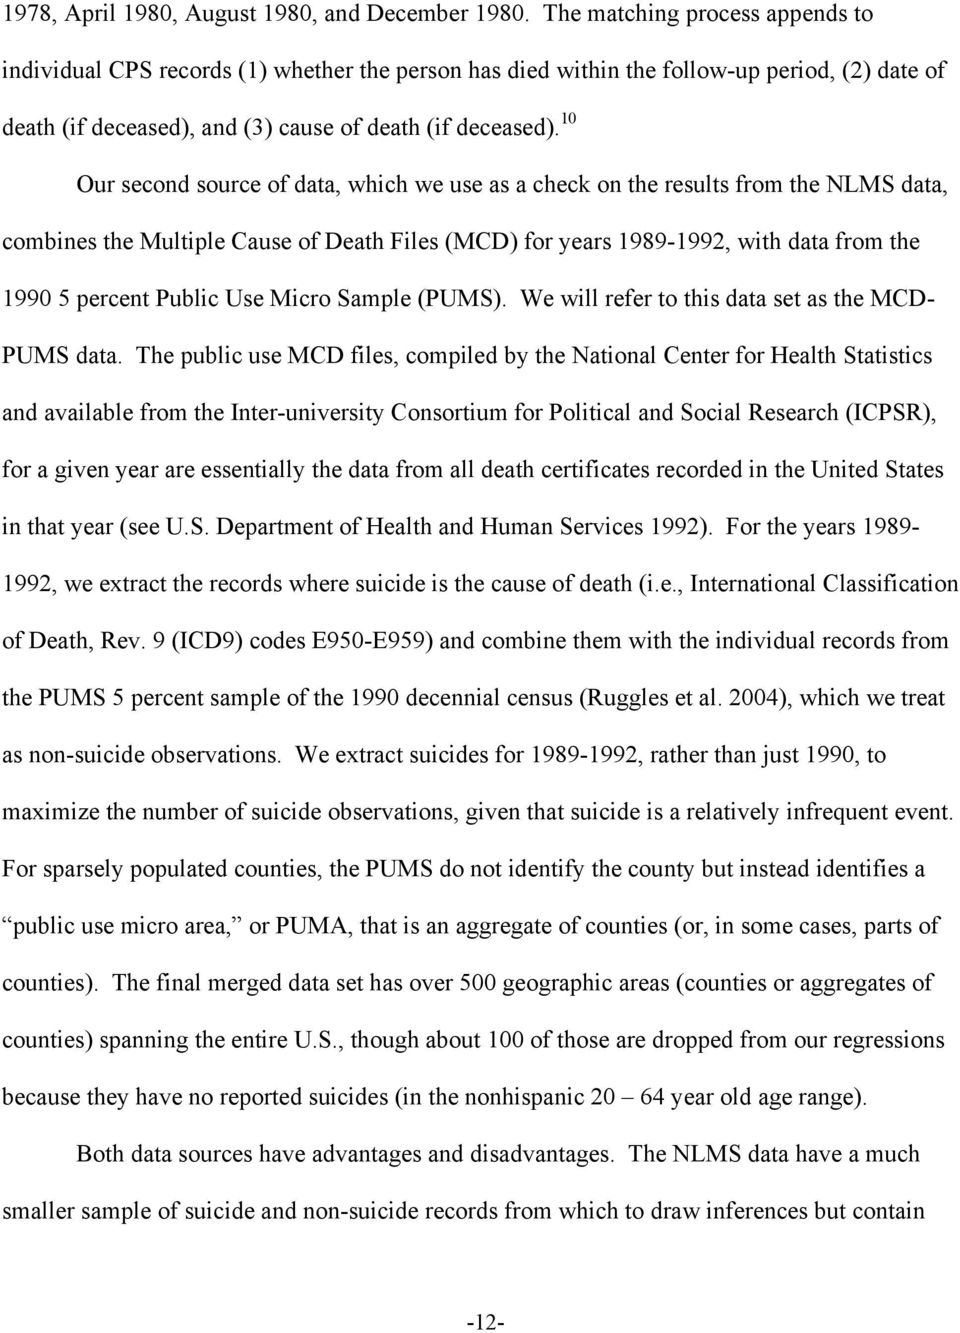 10 Our second source of data, which we use as a check on the results from the NLMS data, combines the Multiple Cause of Death Files (MCD) for years 1989-1992, with data from the 1990 5 percent Public